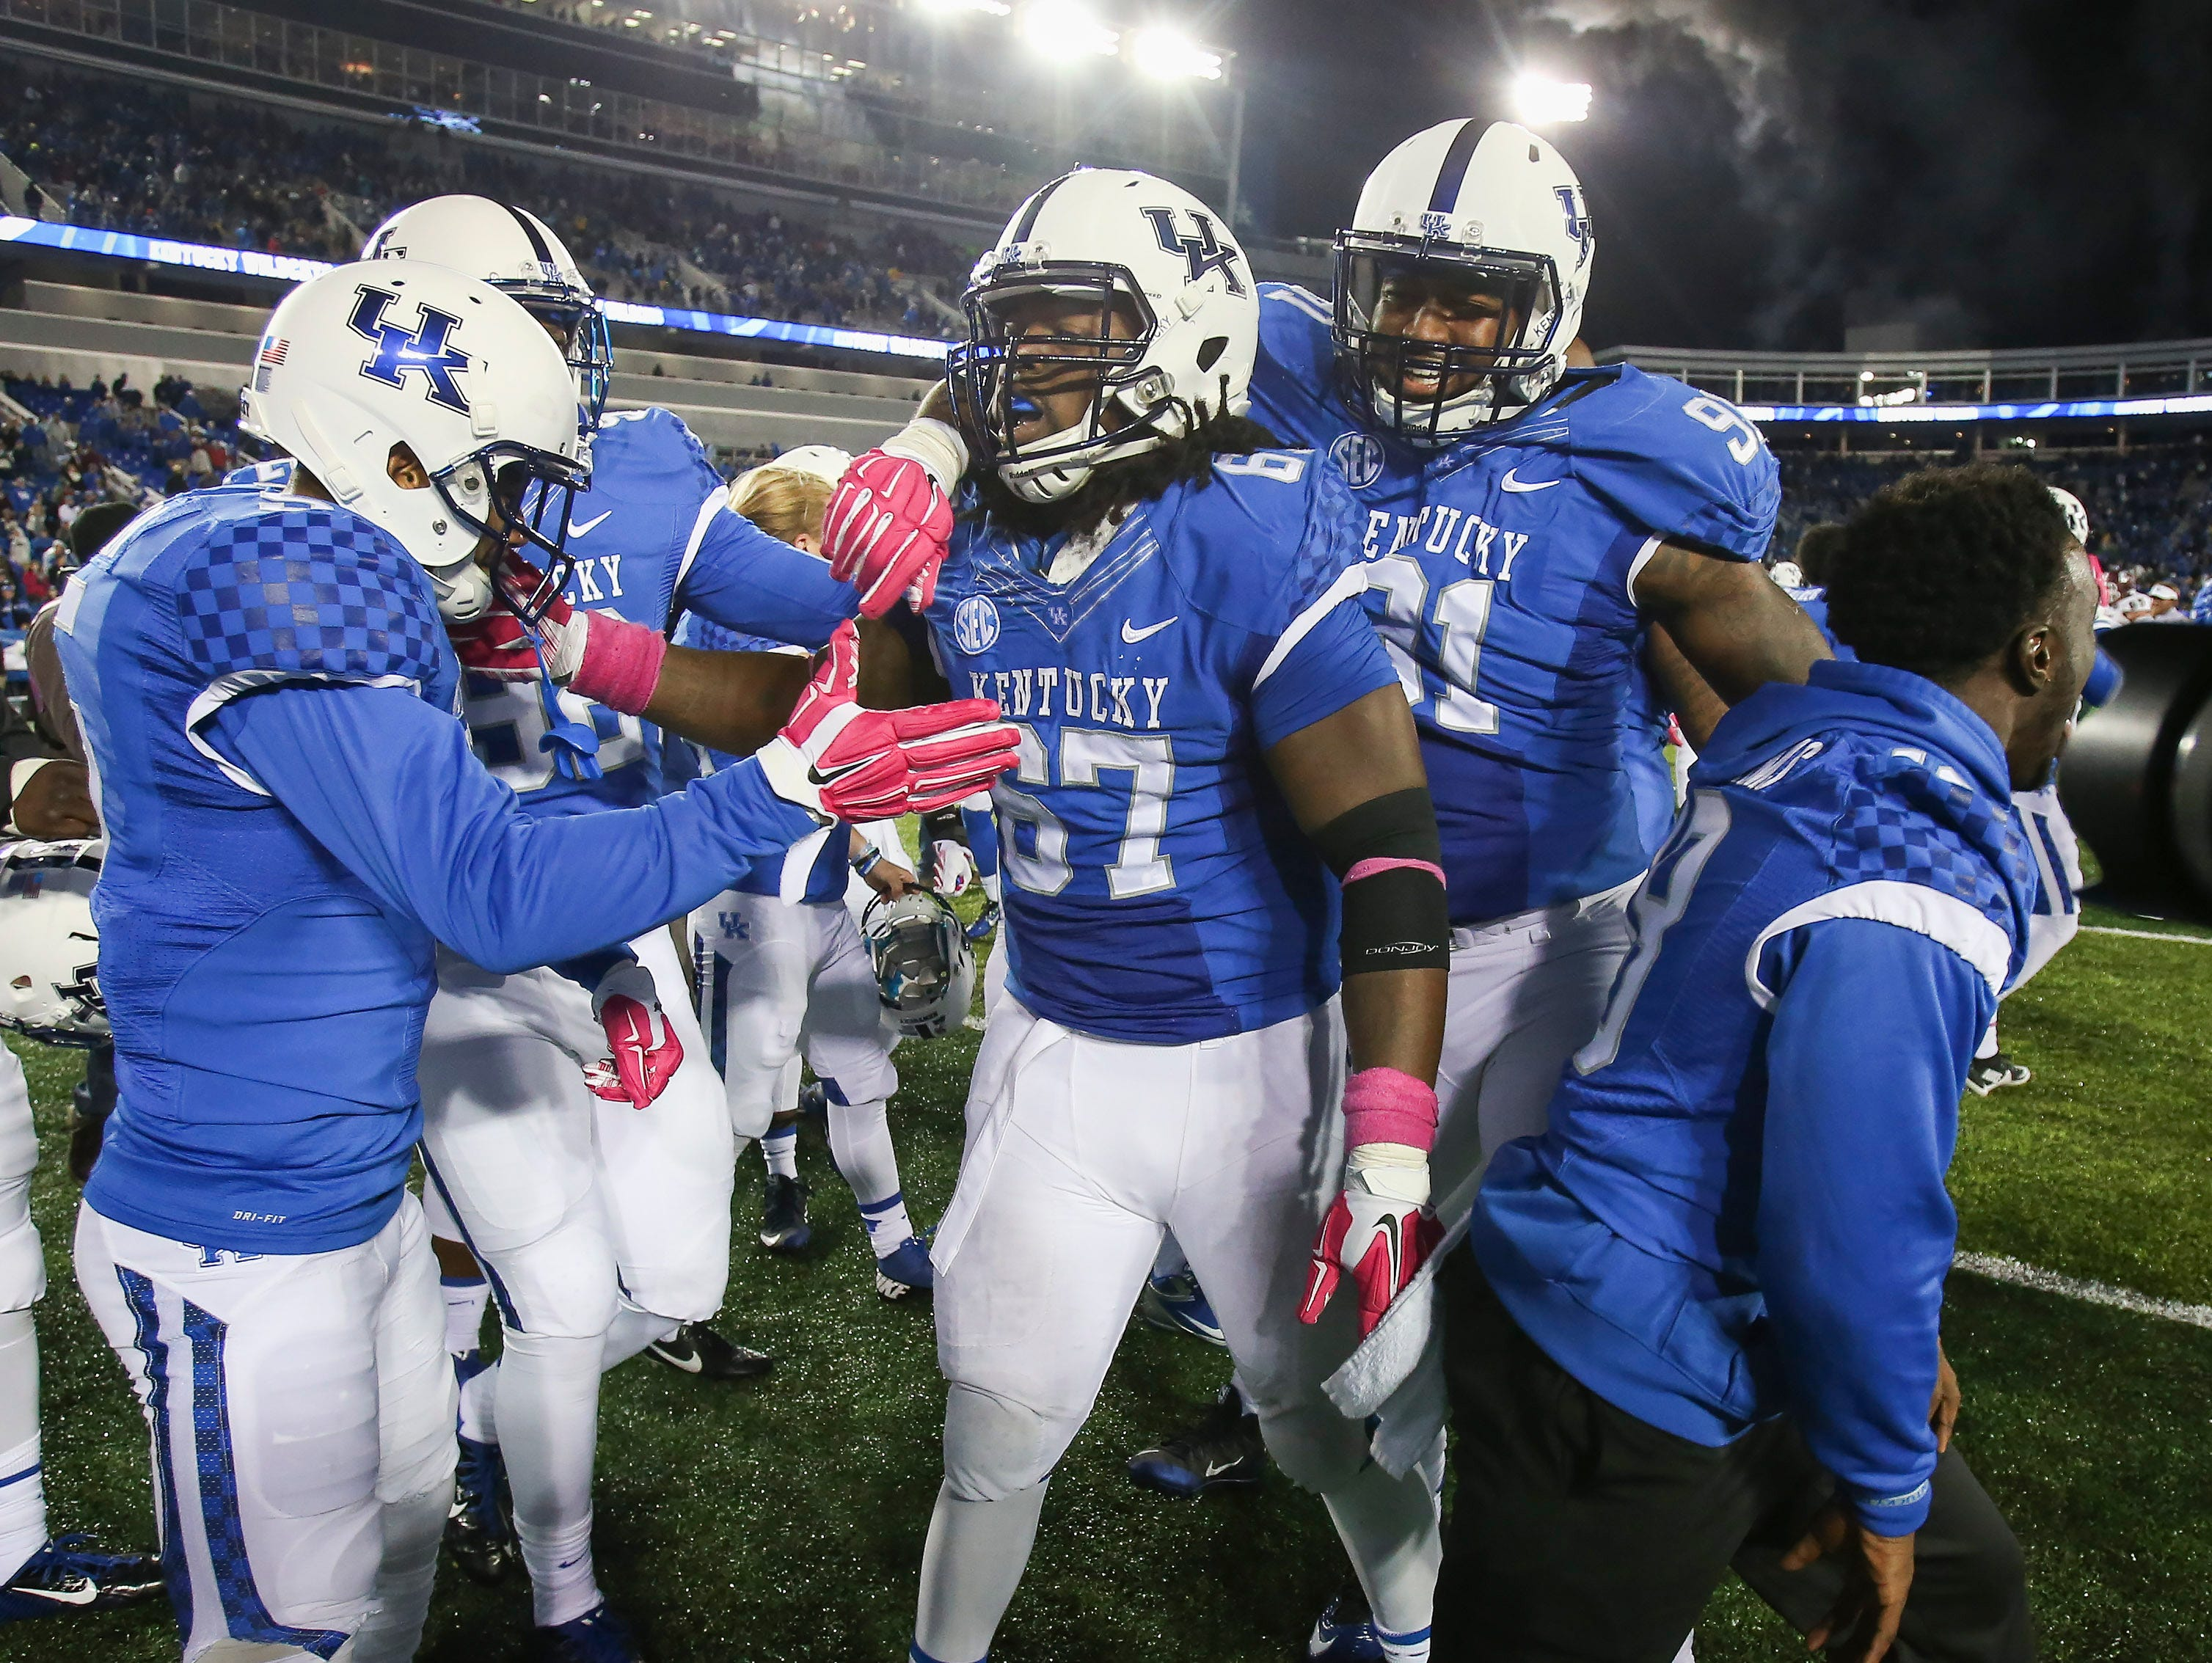 Kentucky cornerback Kendall Randolph, left, defensive tackle Cory Johnson, center, and defensive end Farrington Huguenin celebrate after defeating Eastern Kentucky in overtime during an NCAA college football game Saturday, Oct. 3, 2015, in Lexington, Ky. (AP Photo/David Stephenson) 5, 67, 91